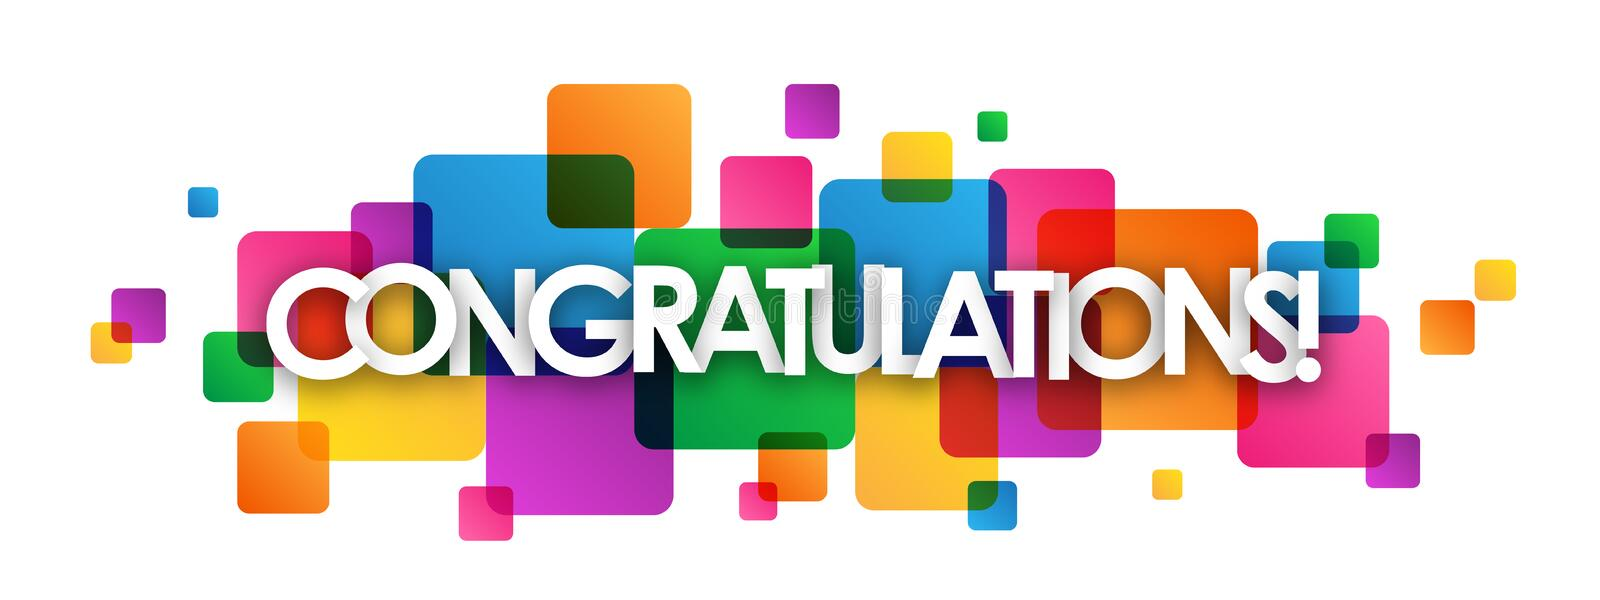 CONGRATULATIONS! colorful overlapping squares banner royalty free stock photography